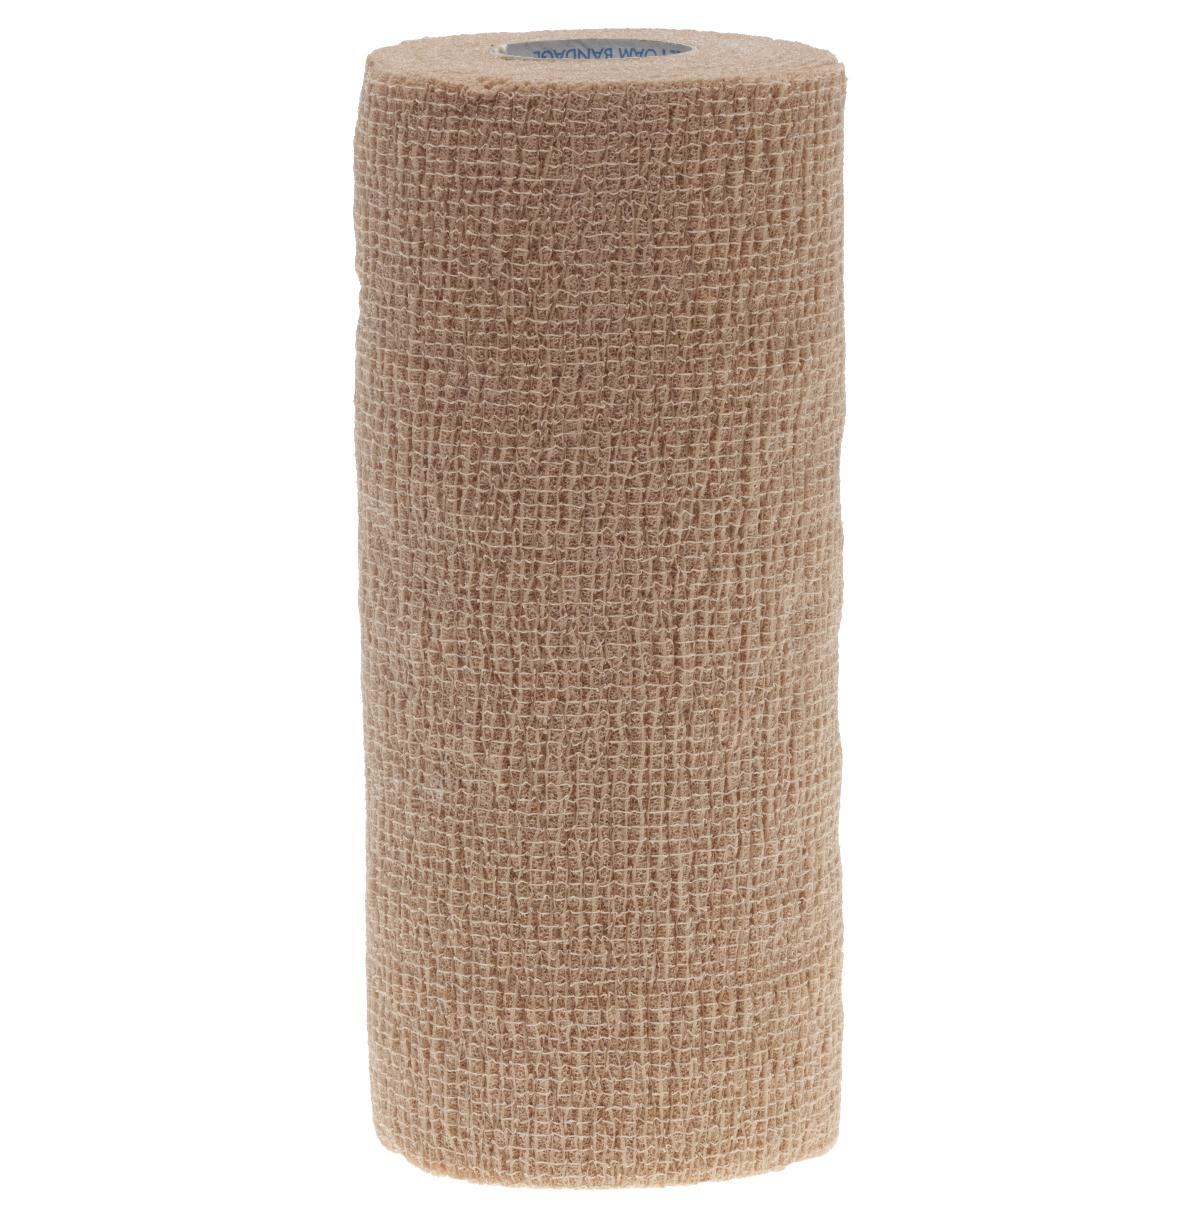 Or & Surgery Wound Care Bandages Cohesive Elastic Bandages - Dynj089006 - Bandage Foam Coflex Lf2 6x5yd Sterile DYNJ089006